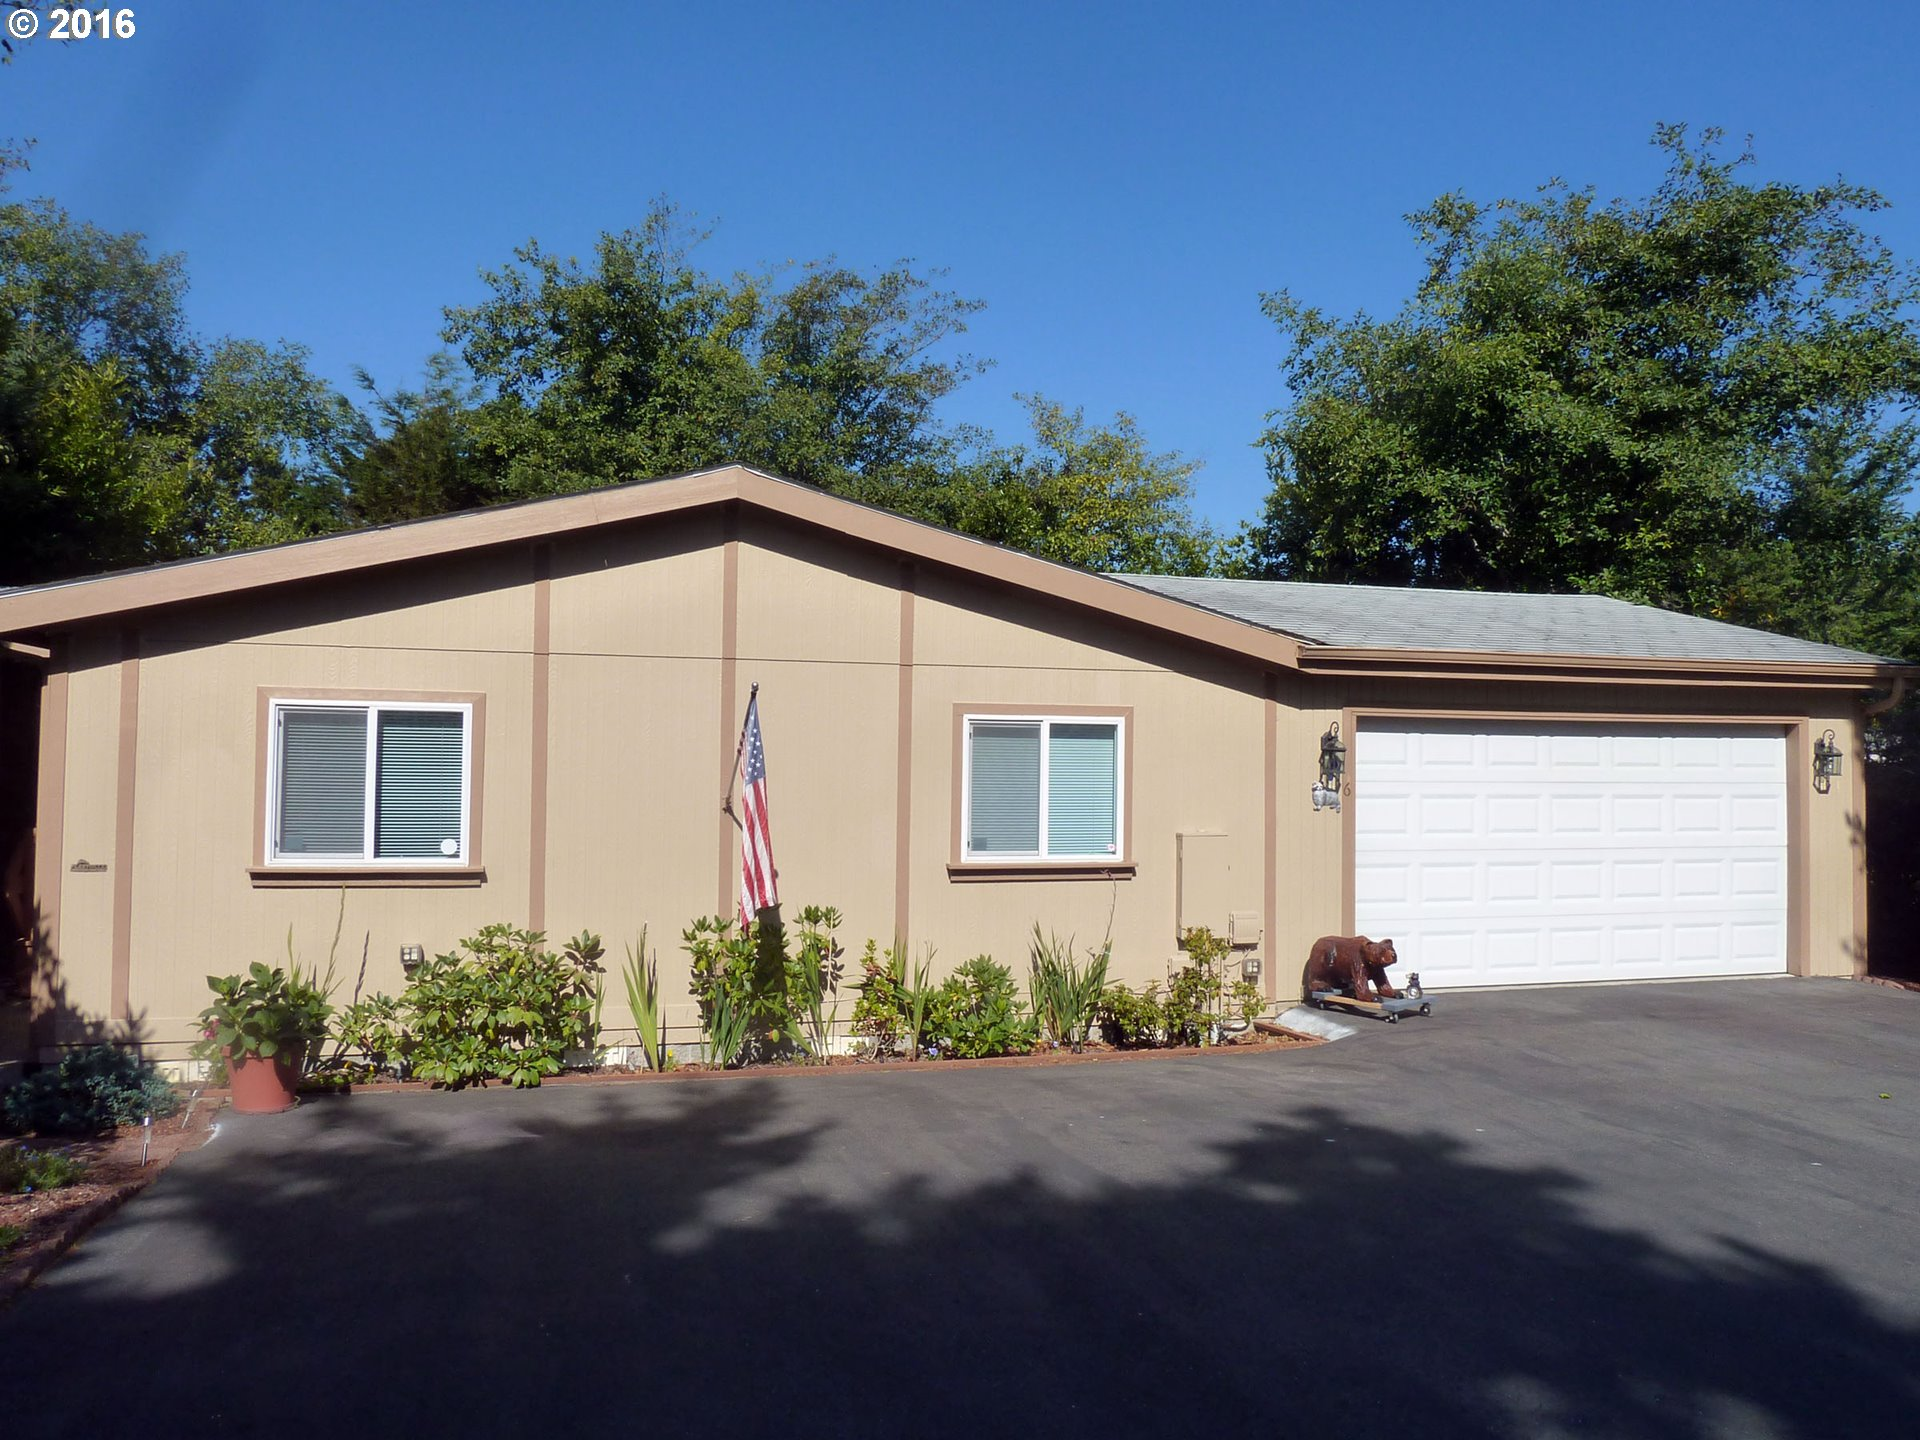 1600 rhododendron dr 6 florence or real estate oregon